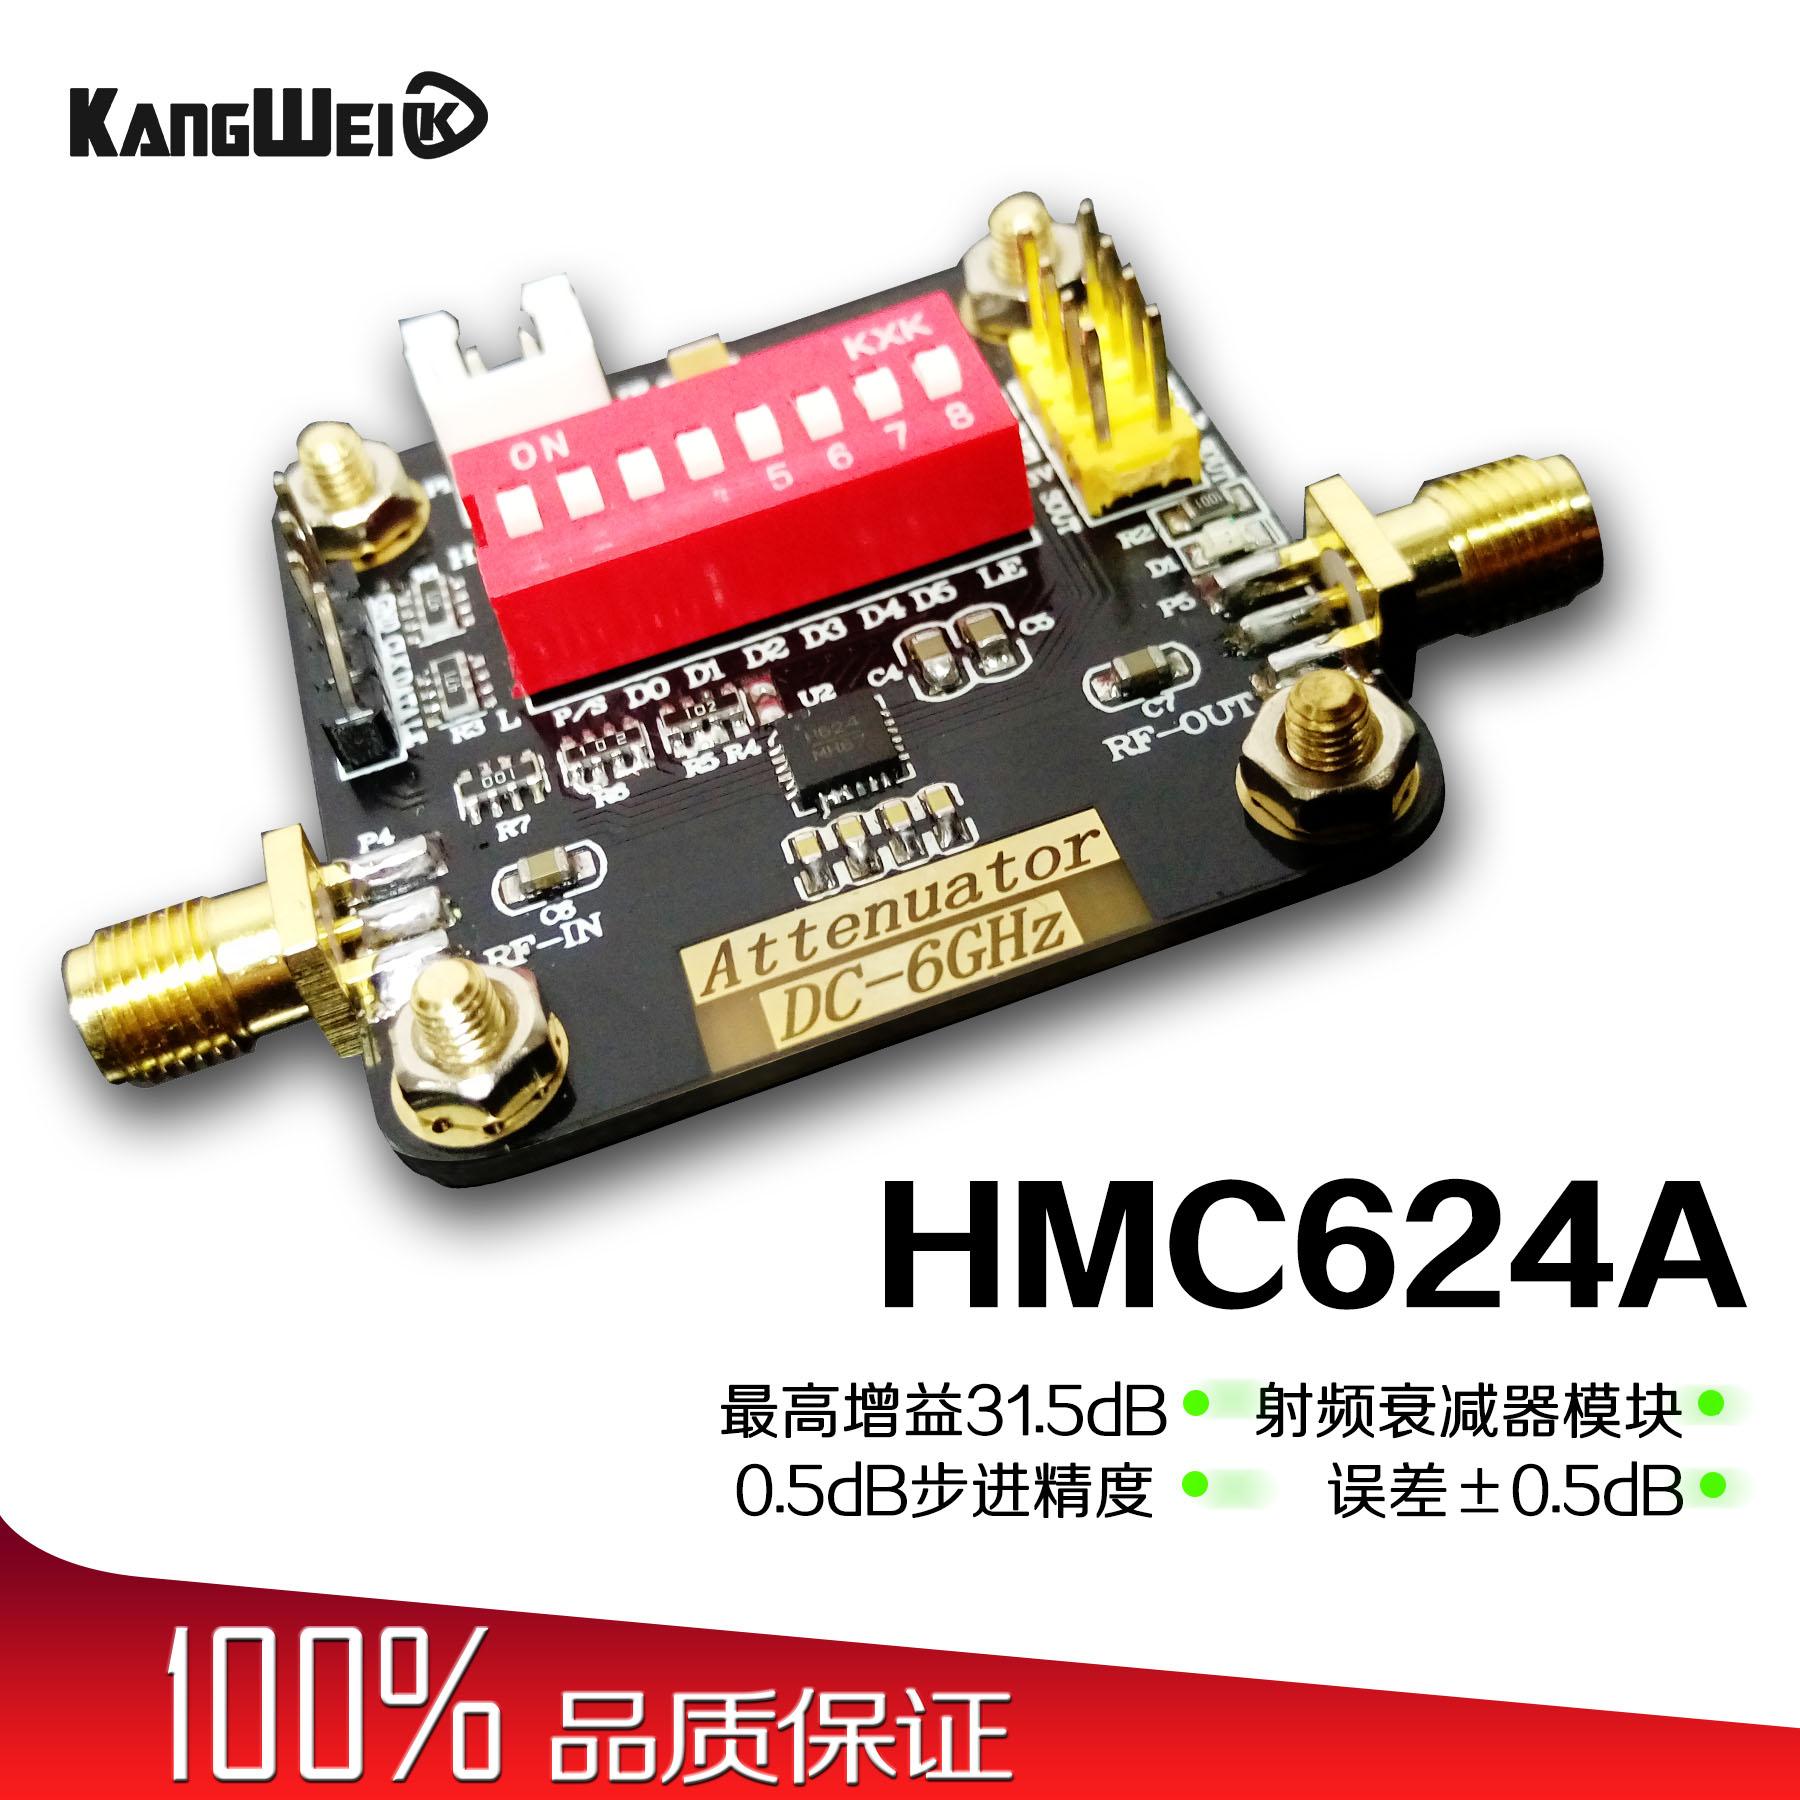 HMC624A digital RF attenuator module, DC~6GHz, 0.5dB stepping accuracy of up to 31.5dB<br>